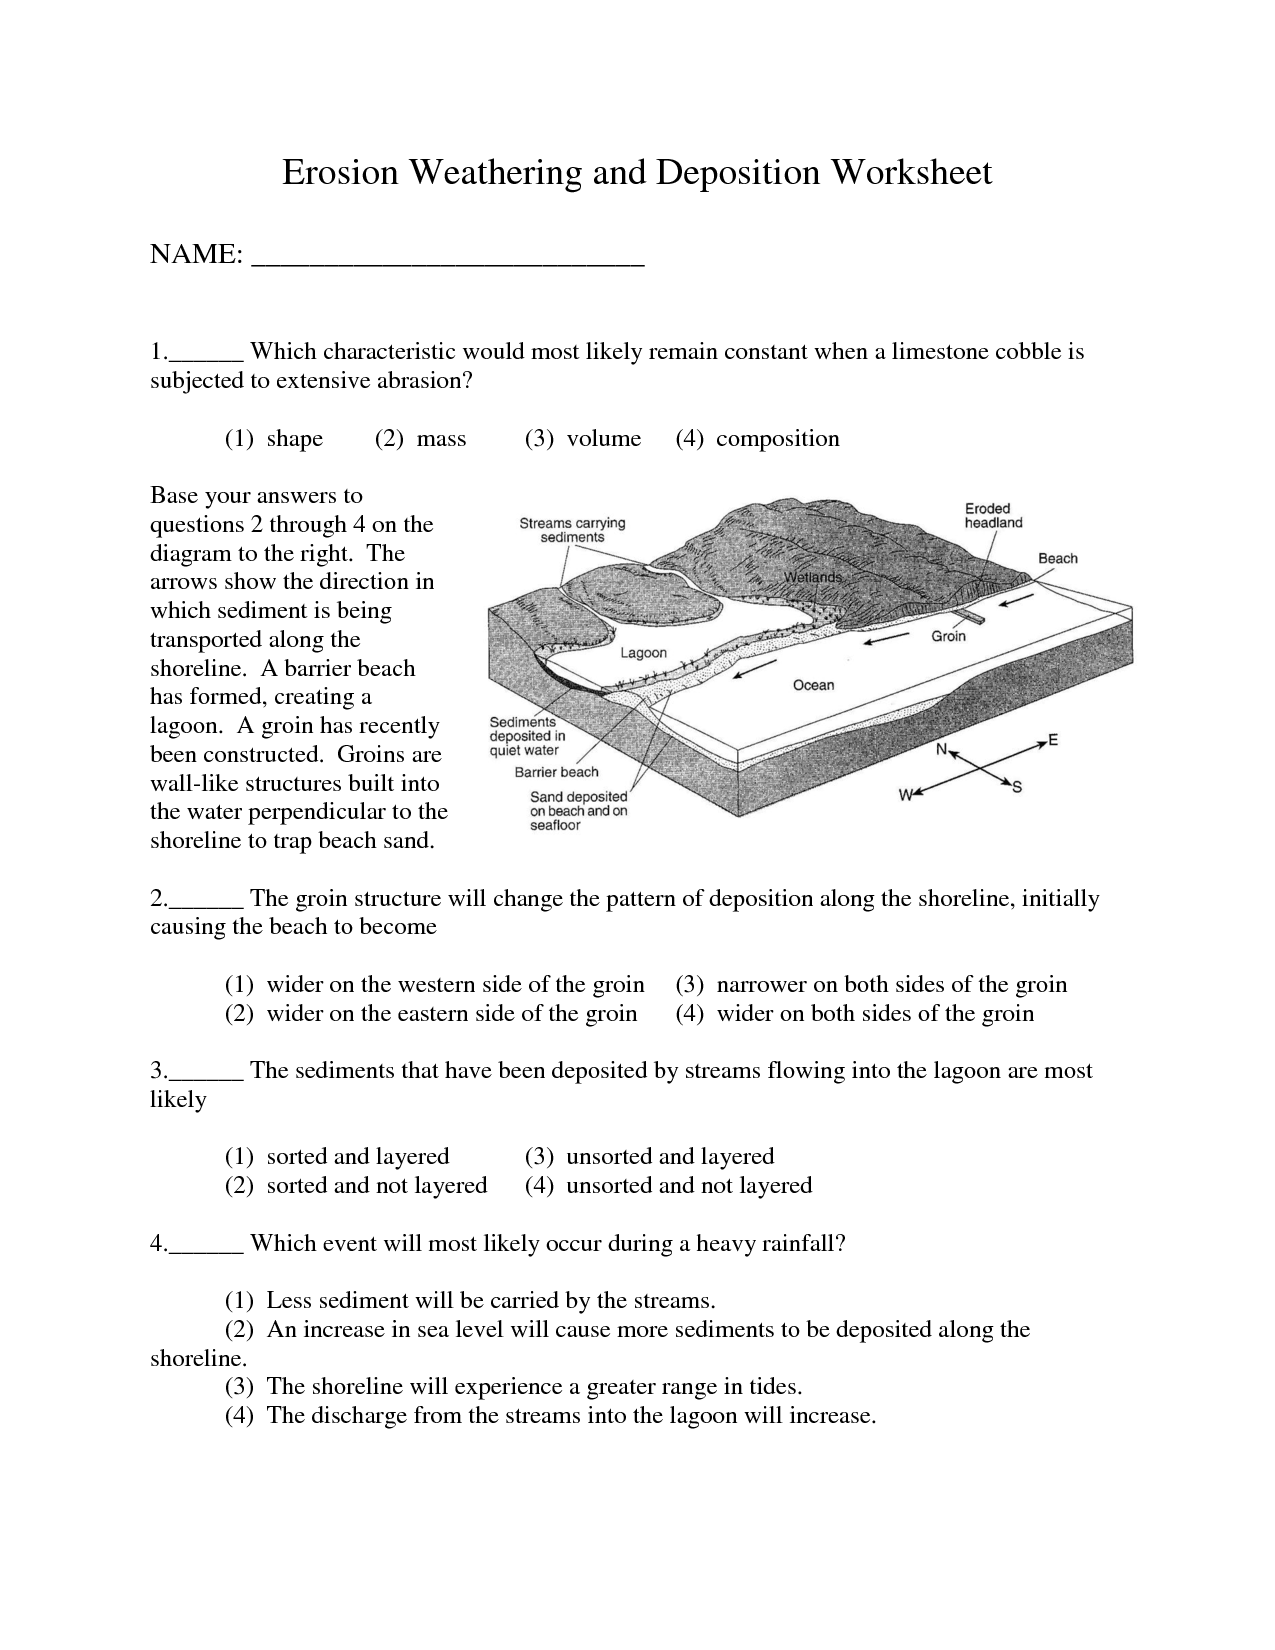 10 Best Images Of Earth Science Erosion Worksheet